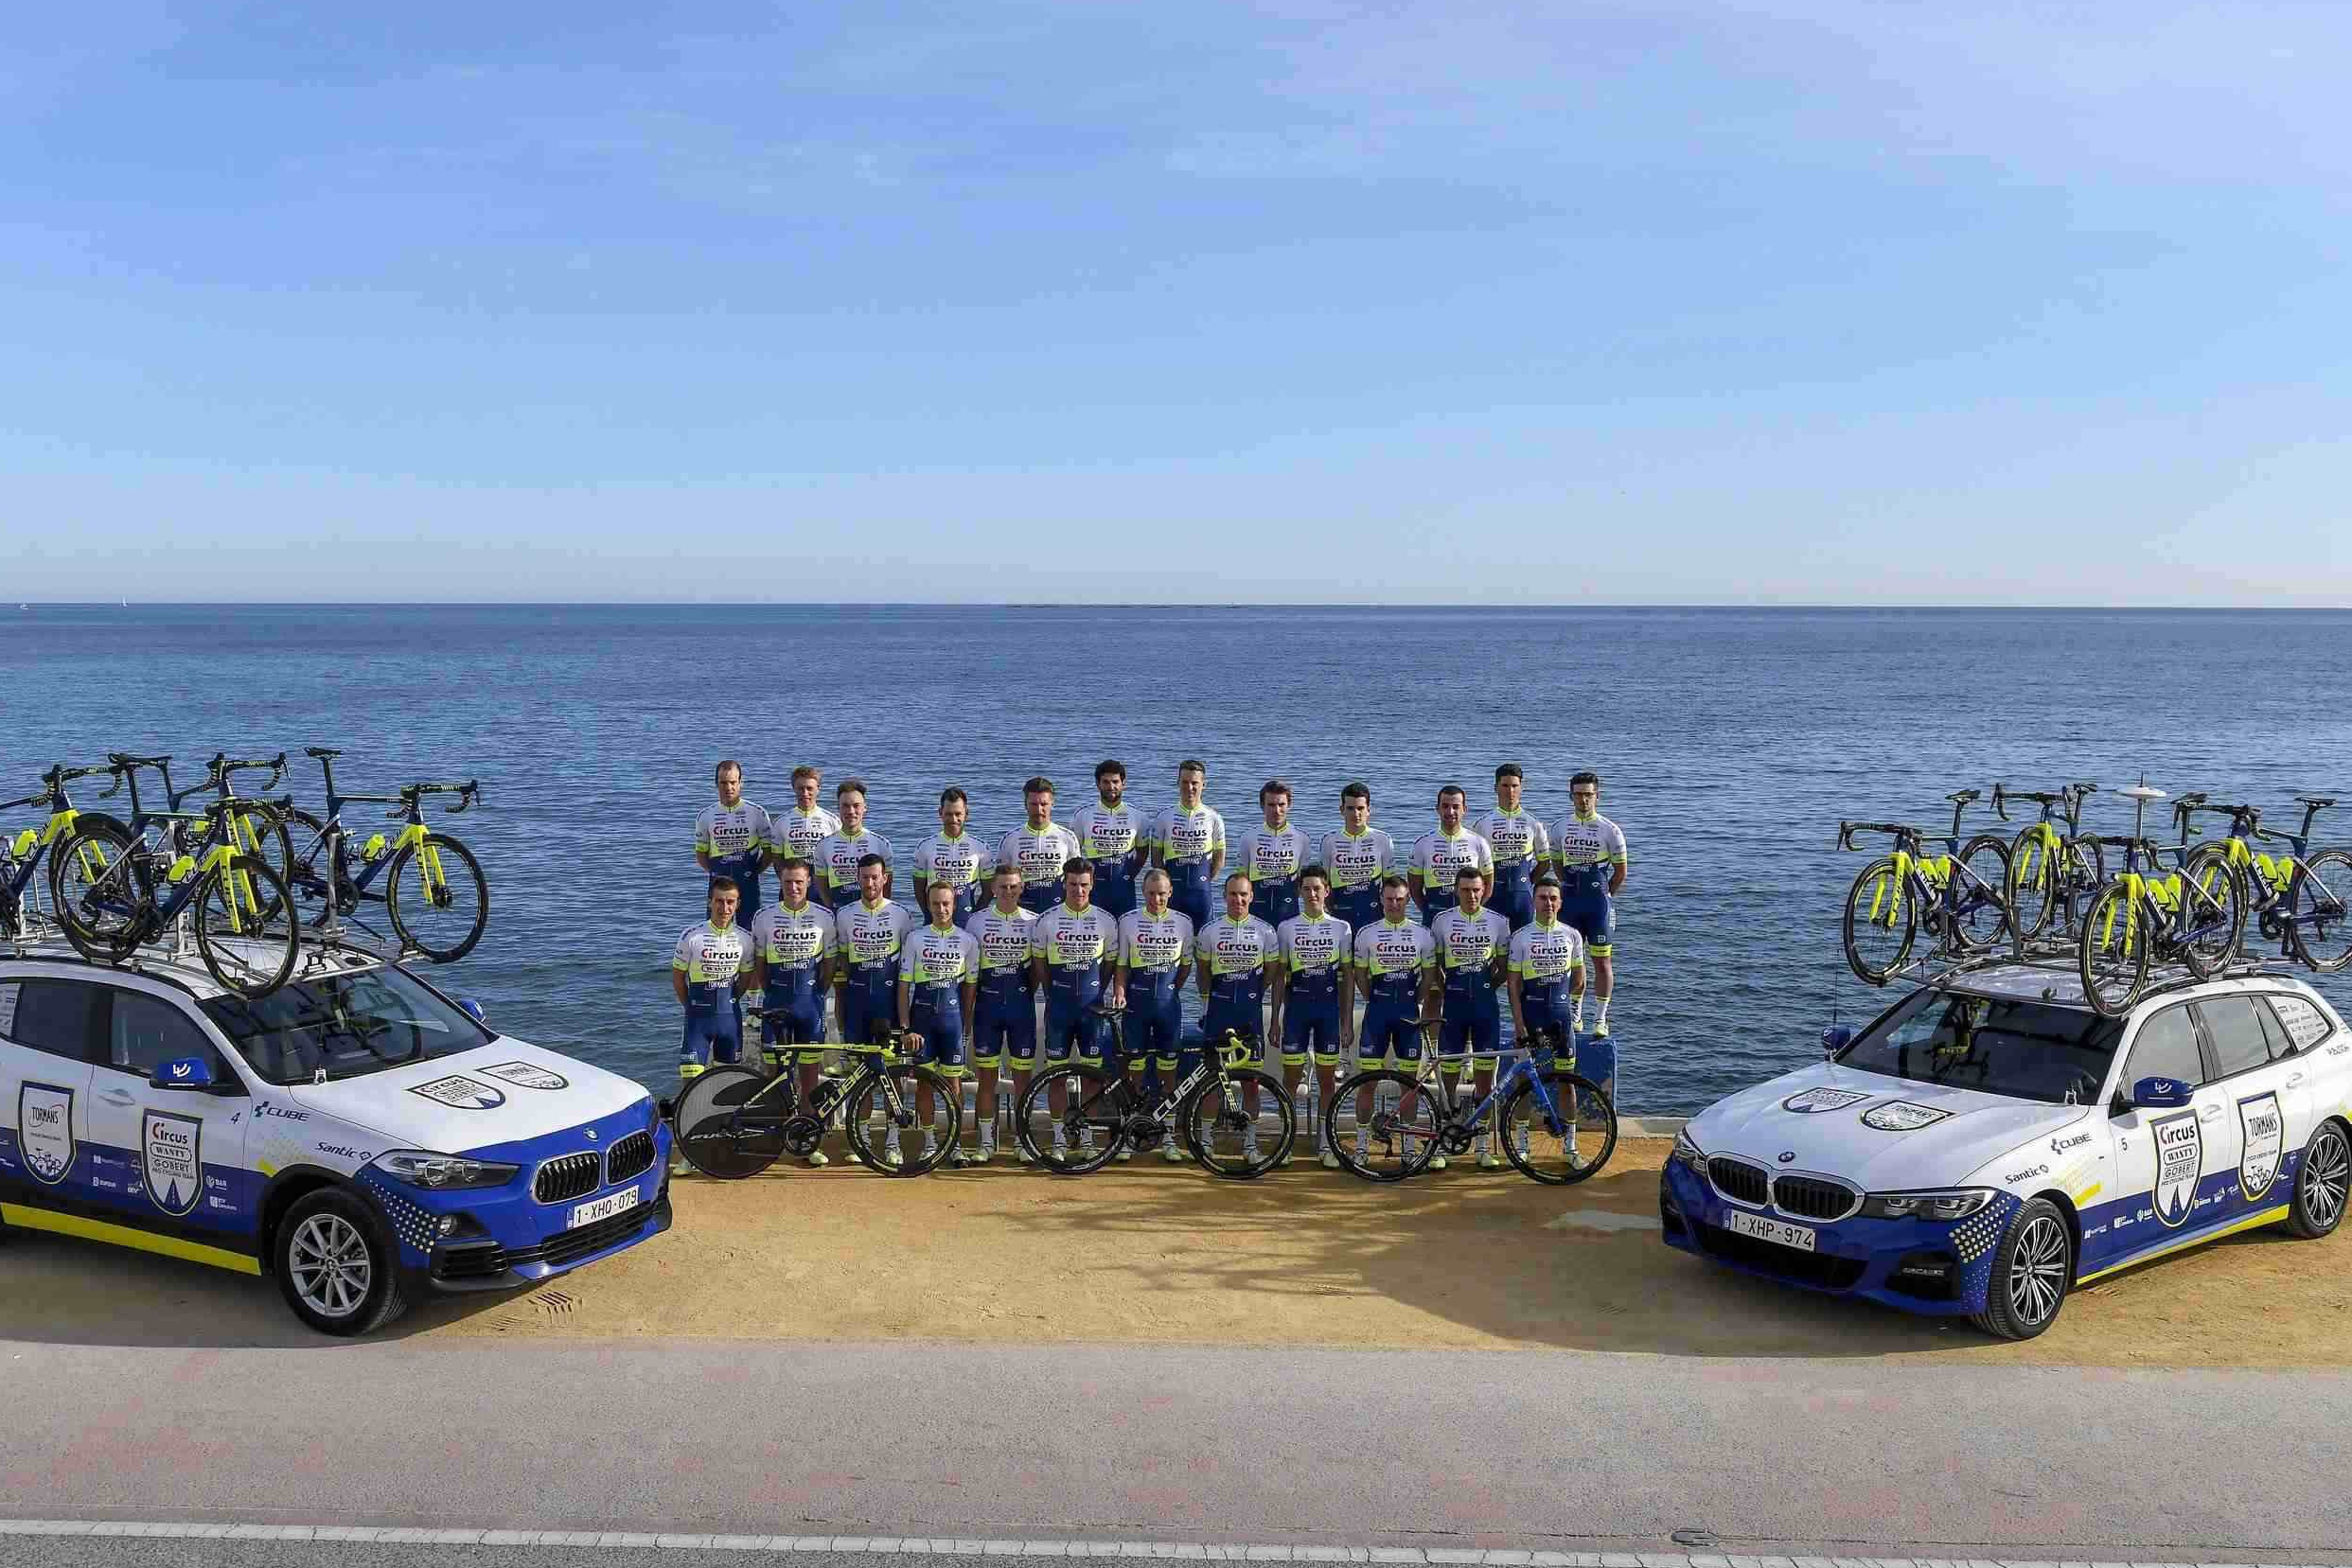 ALFAZ DEL PI, SPAIN - JANUARY 17 : Team picture of the Circus - Wanty Gobert pro cycling team 2020 during a team training winter session of the Circus - Wanty Gobert pro cycling team 2020 on January 17, 2020 in Alfaz Del Pi, Spain, 17/01/2020 ( Photo by Nico Vereecken / Photo News